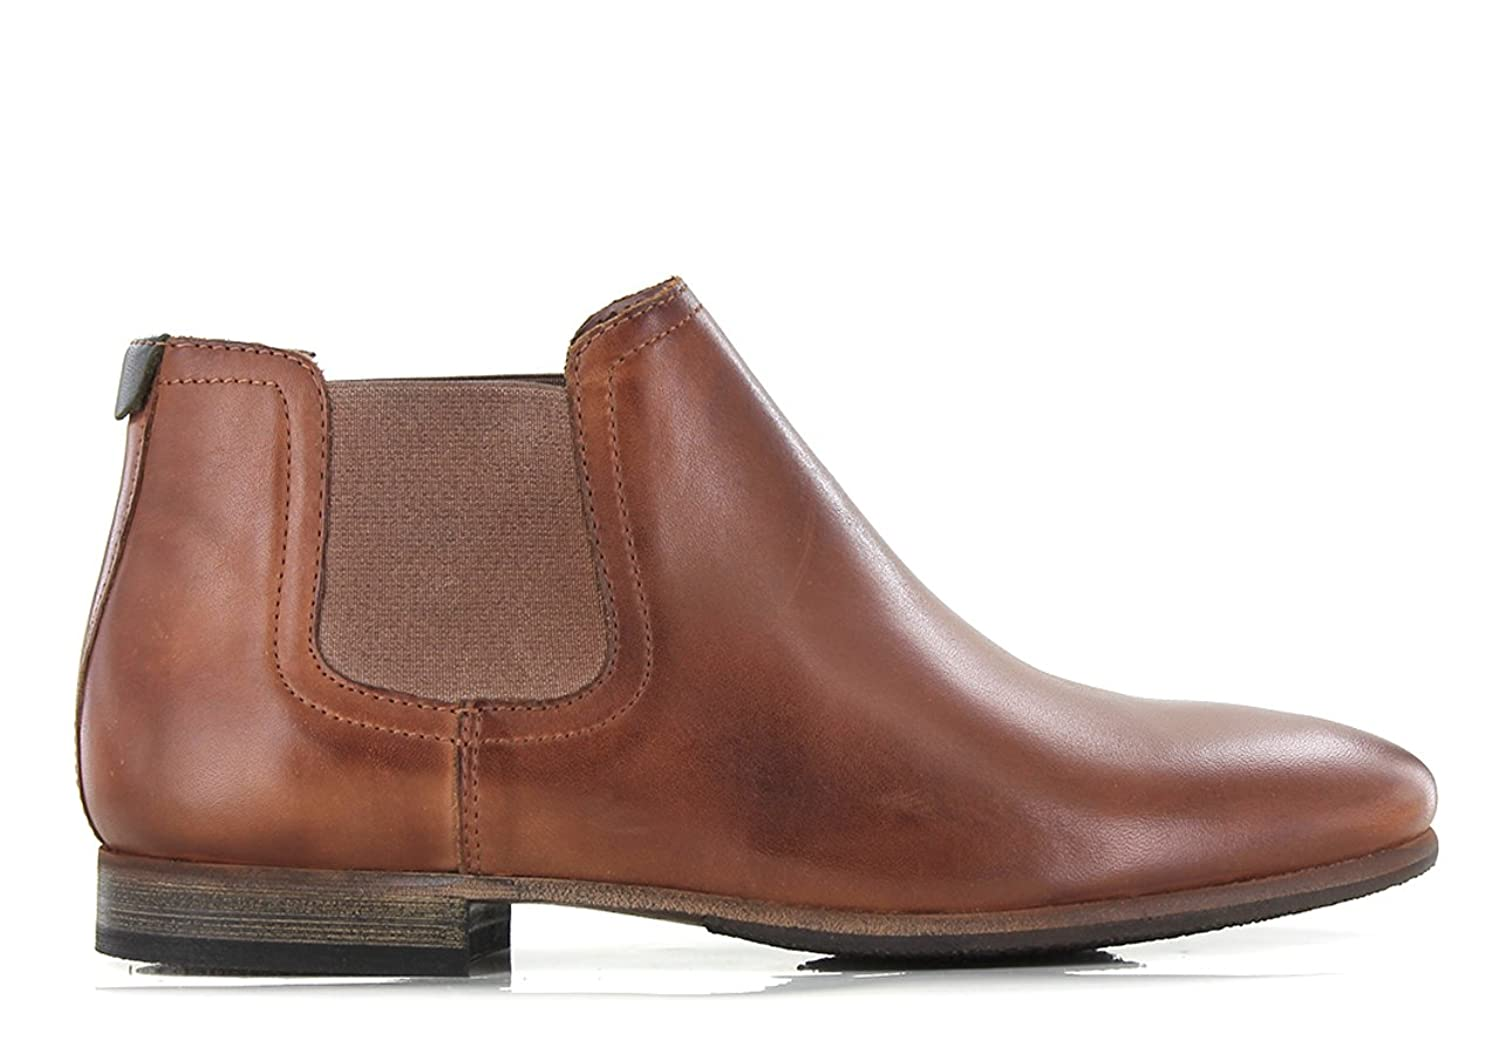 Bottines en cuir Gazetta, Marron